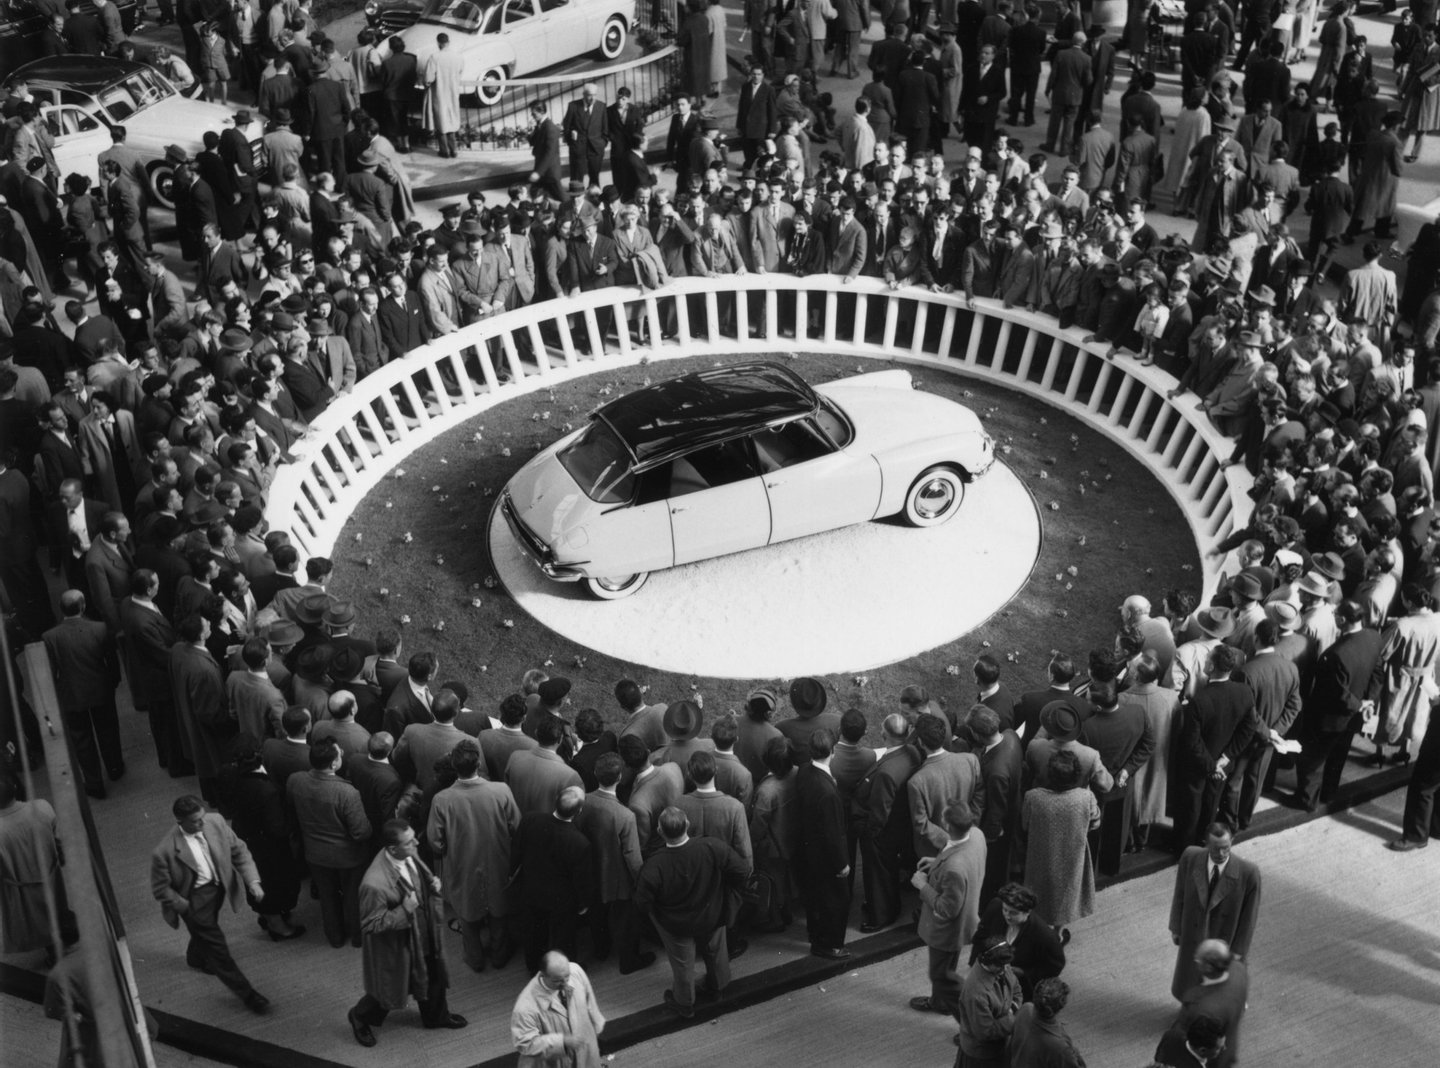 Crowds at the Paris Motor Show in the Grand Palais surround a Citroen DS-19 on display. (Photo by Keystone/Getty Images)